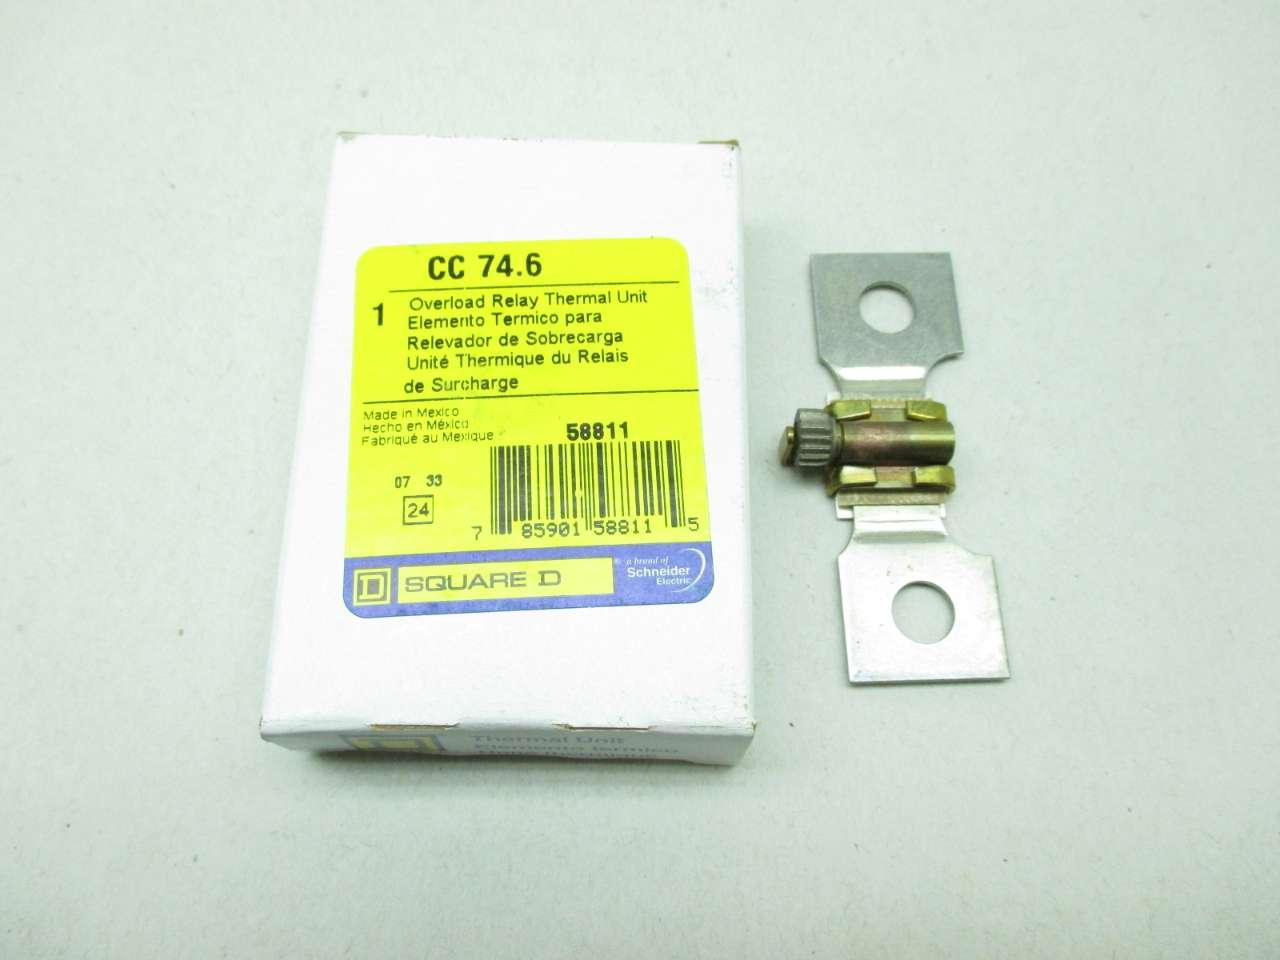 Square D CC746 Thermal Overload Heater Relay Unit